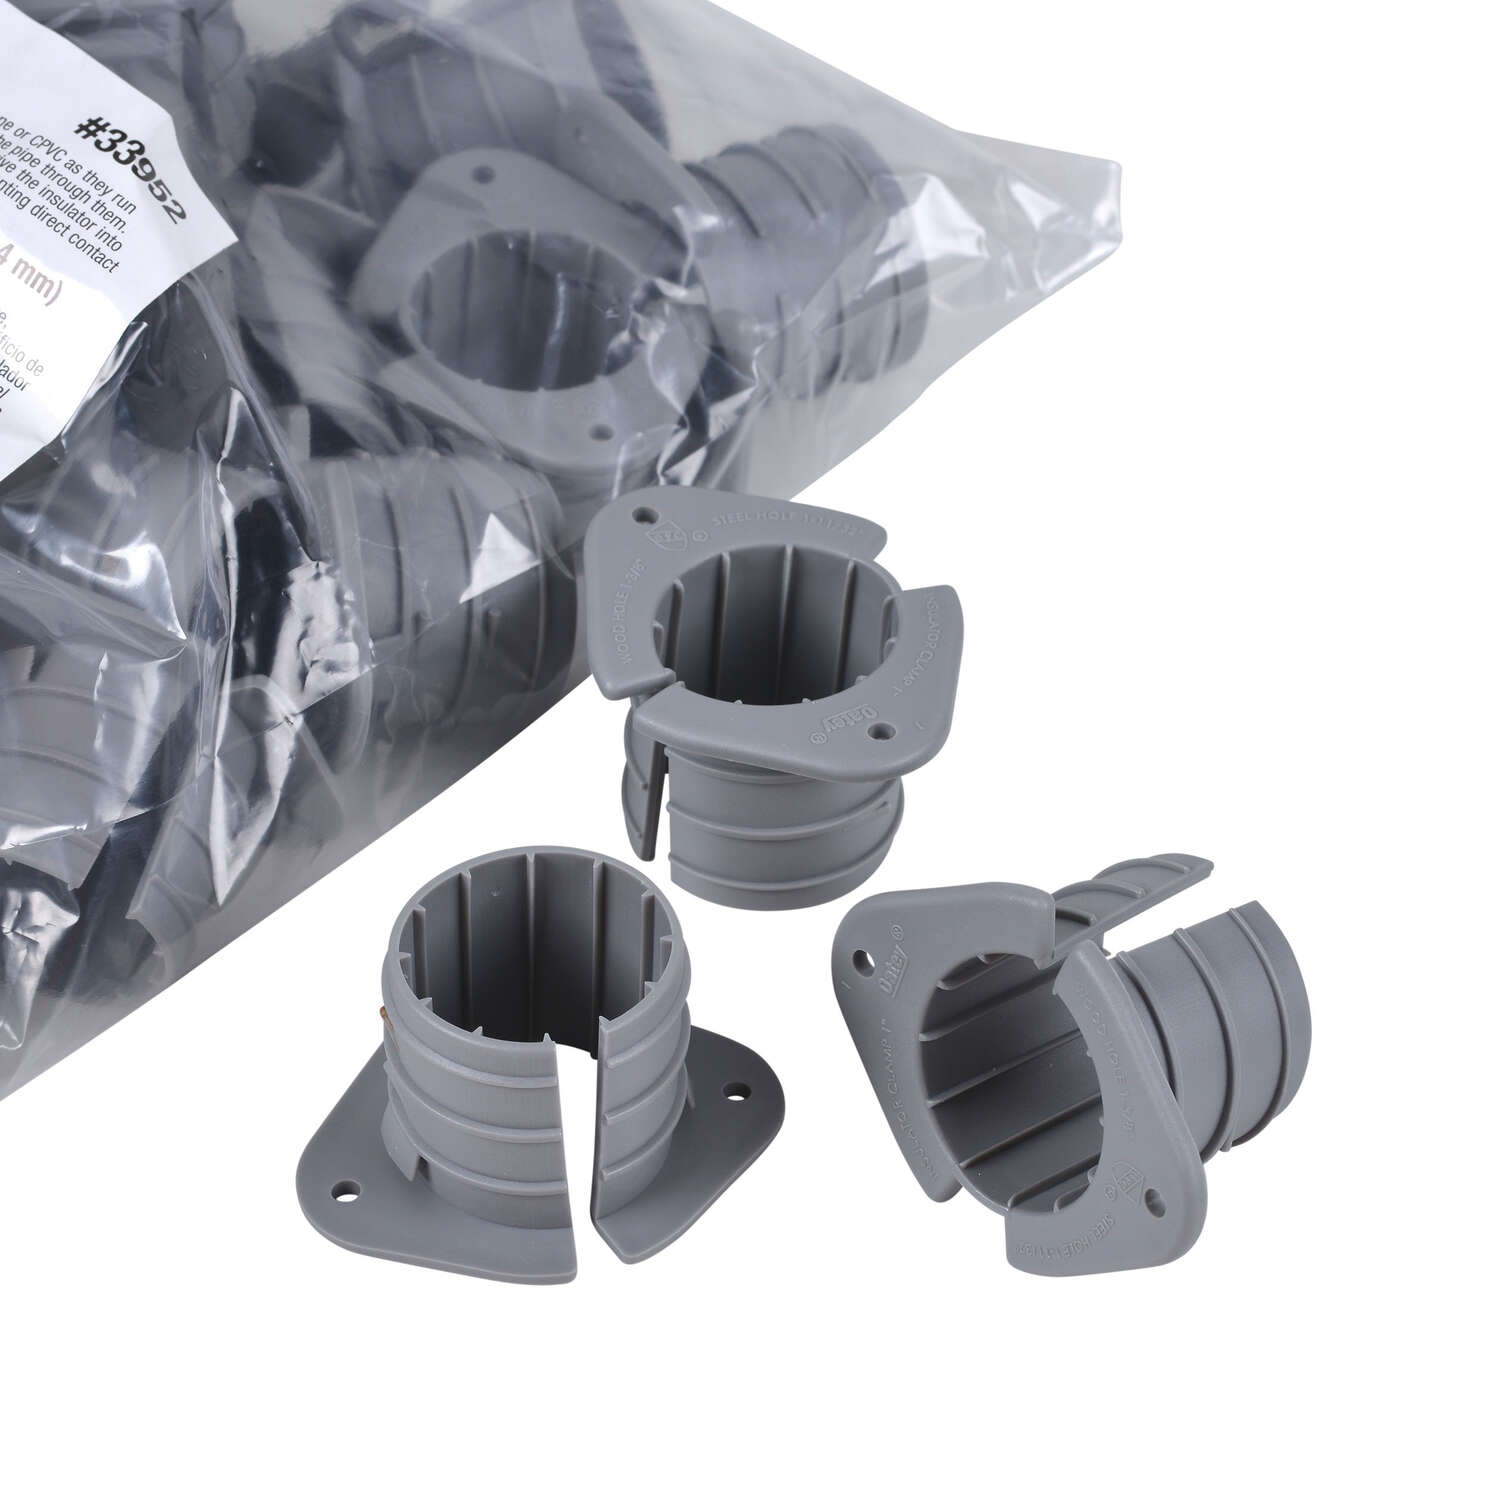 Oatey  3/4 in. Insulating Pipe Clamps  Polypropylene